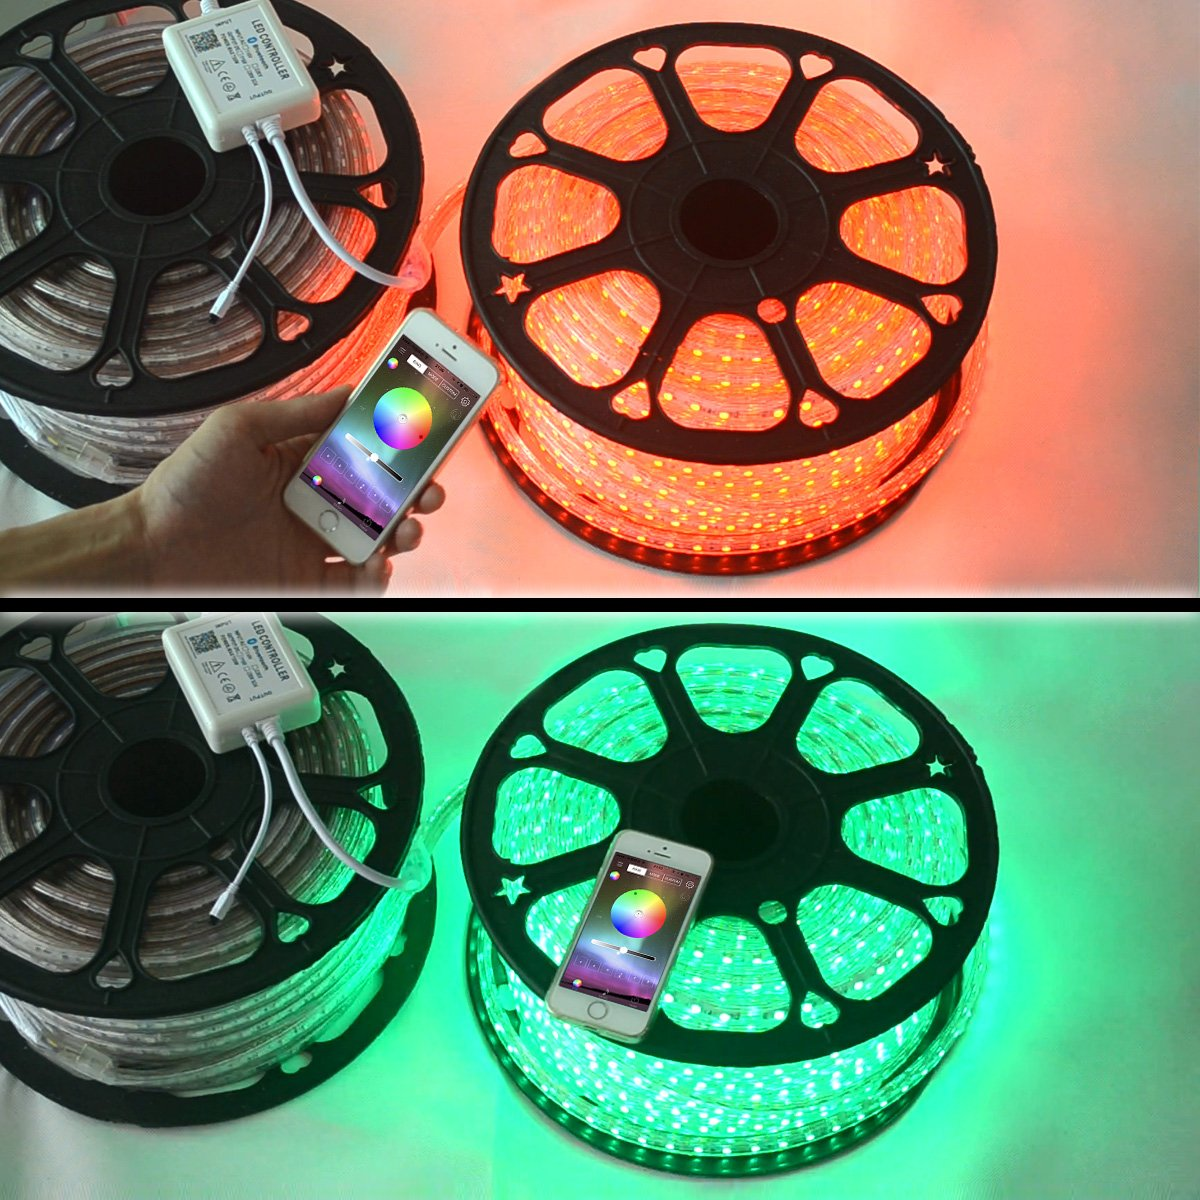 Outdoor Lighting SuperlightingLED AC 110V High-Voltage LED Bluetooth Color Changing RGB Controller with IR Remote and Music Time APP Control System for 90Ft AC110~130V Waterproof LED Tape Lights Home Decoration